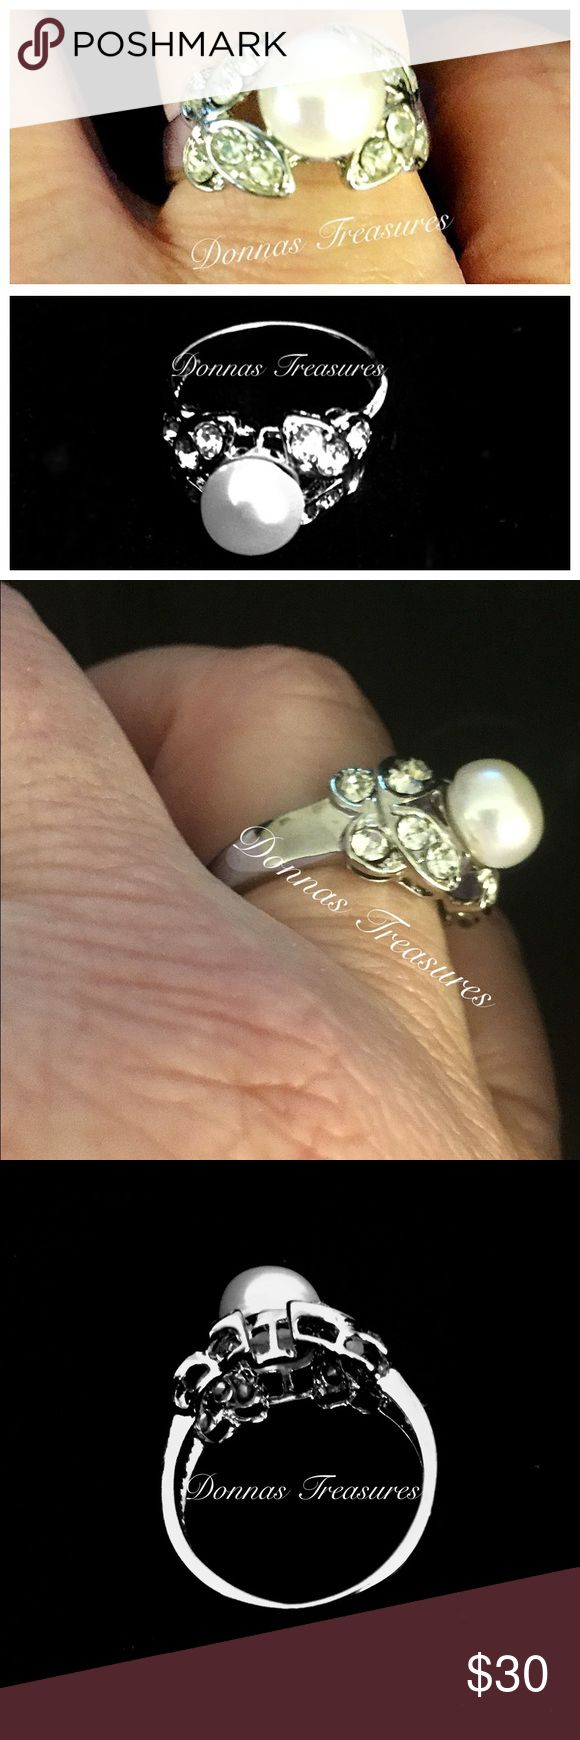 🎉Natural Cultured Pearl & Crystal Ring This vintage inspired piece features a natural diamond between two butterflies started with white crystals. The setting is a nickel free alloy. #0845-2 Jewelry Rings